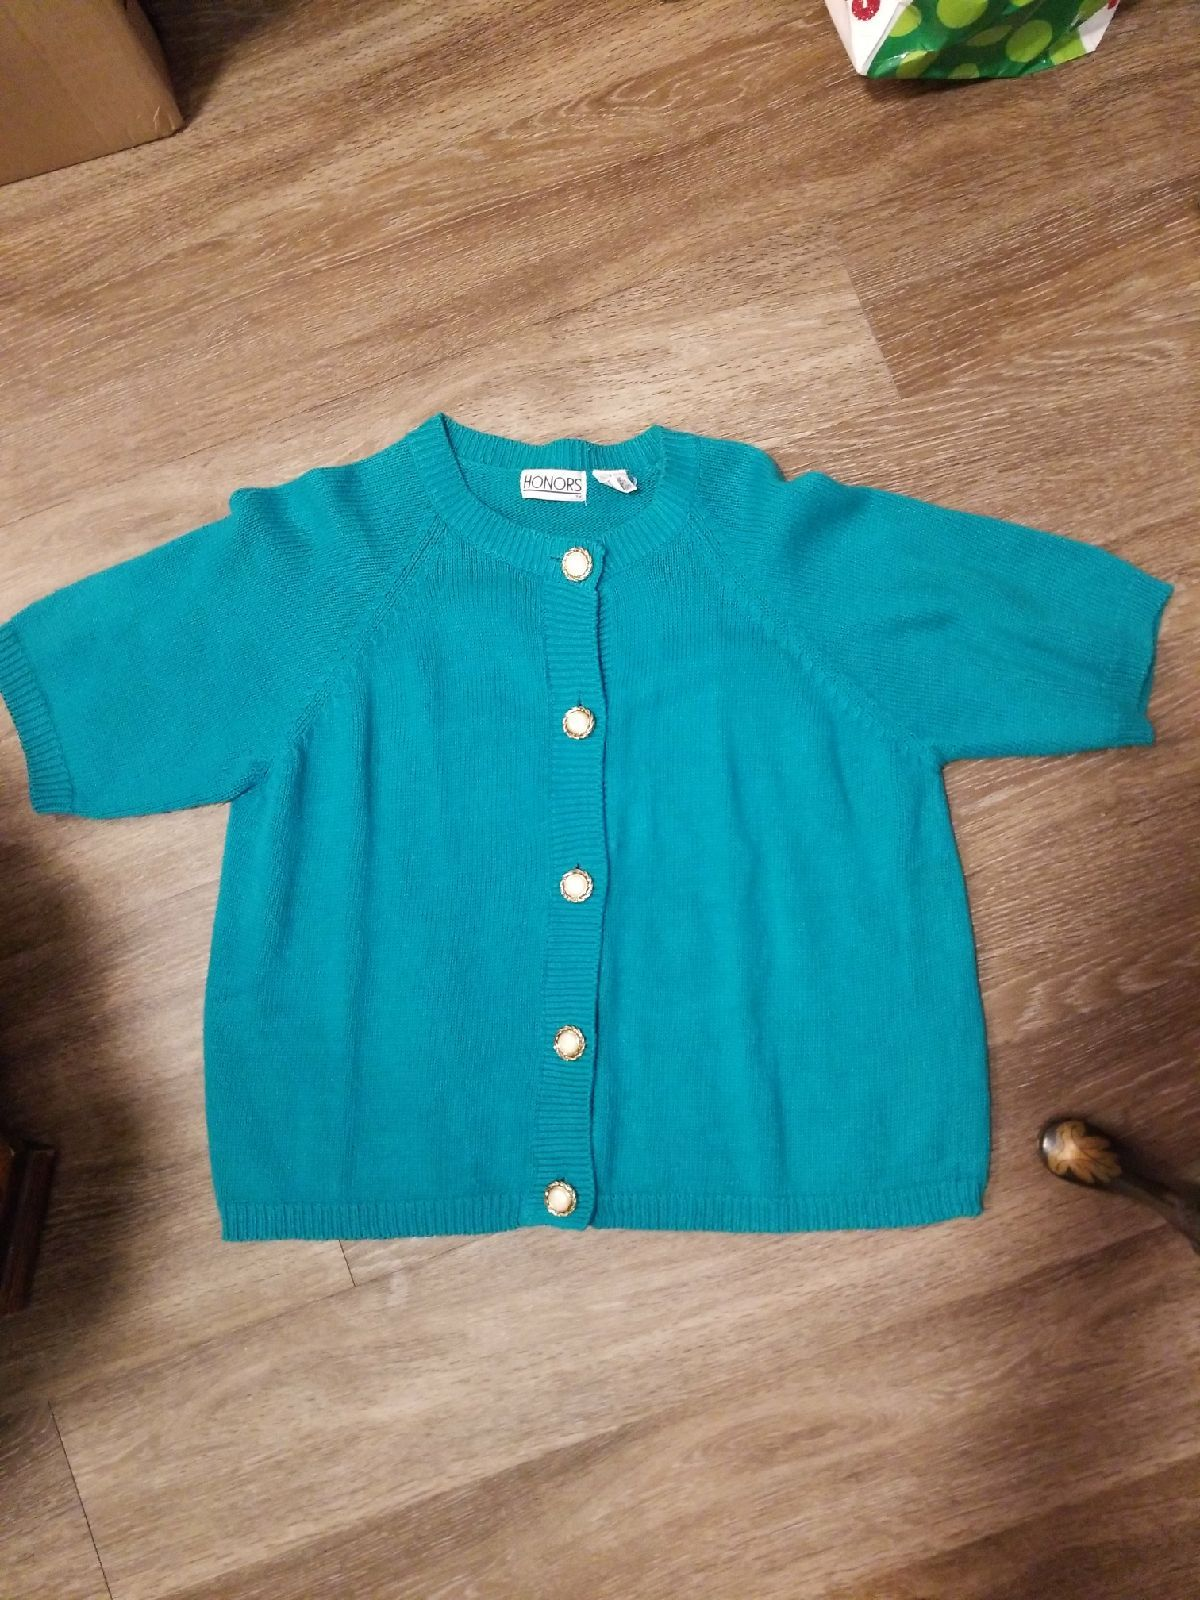 Vintage Turquoise Short Sleeve Sweater - Mercari: BUY & SELL ...